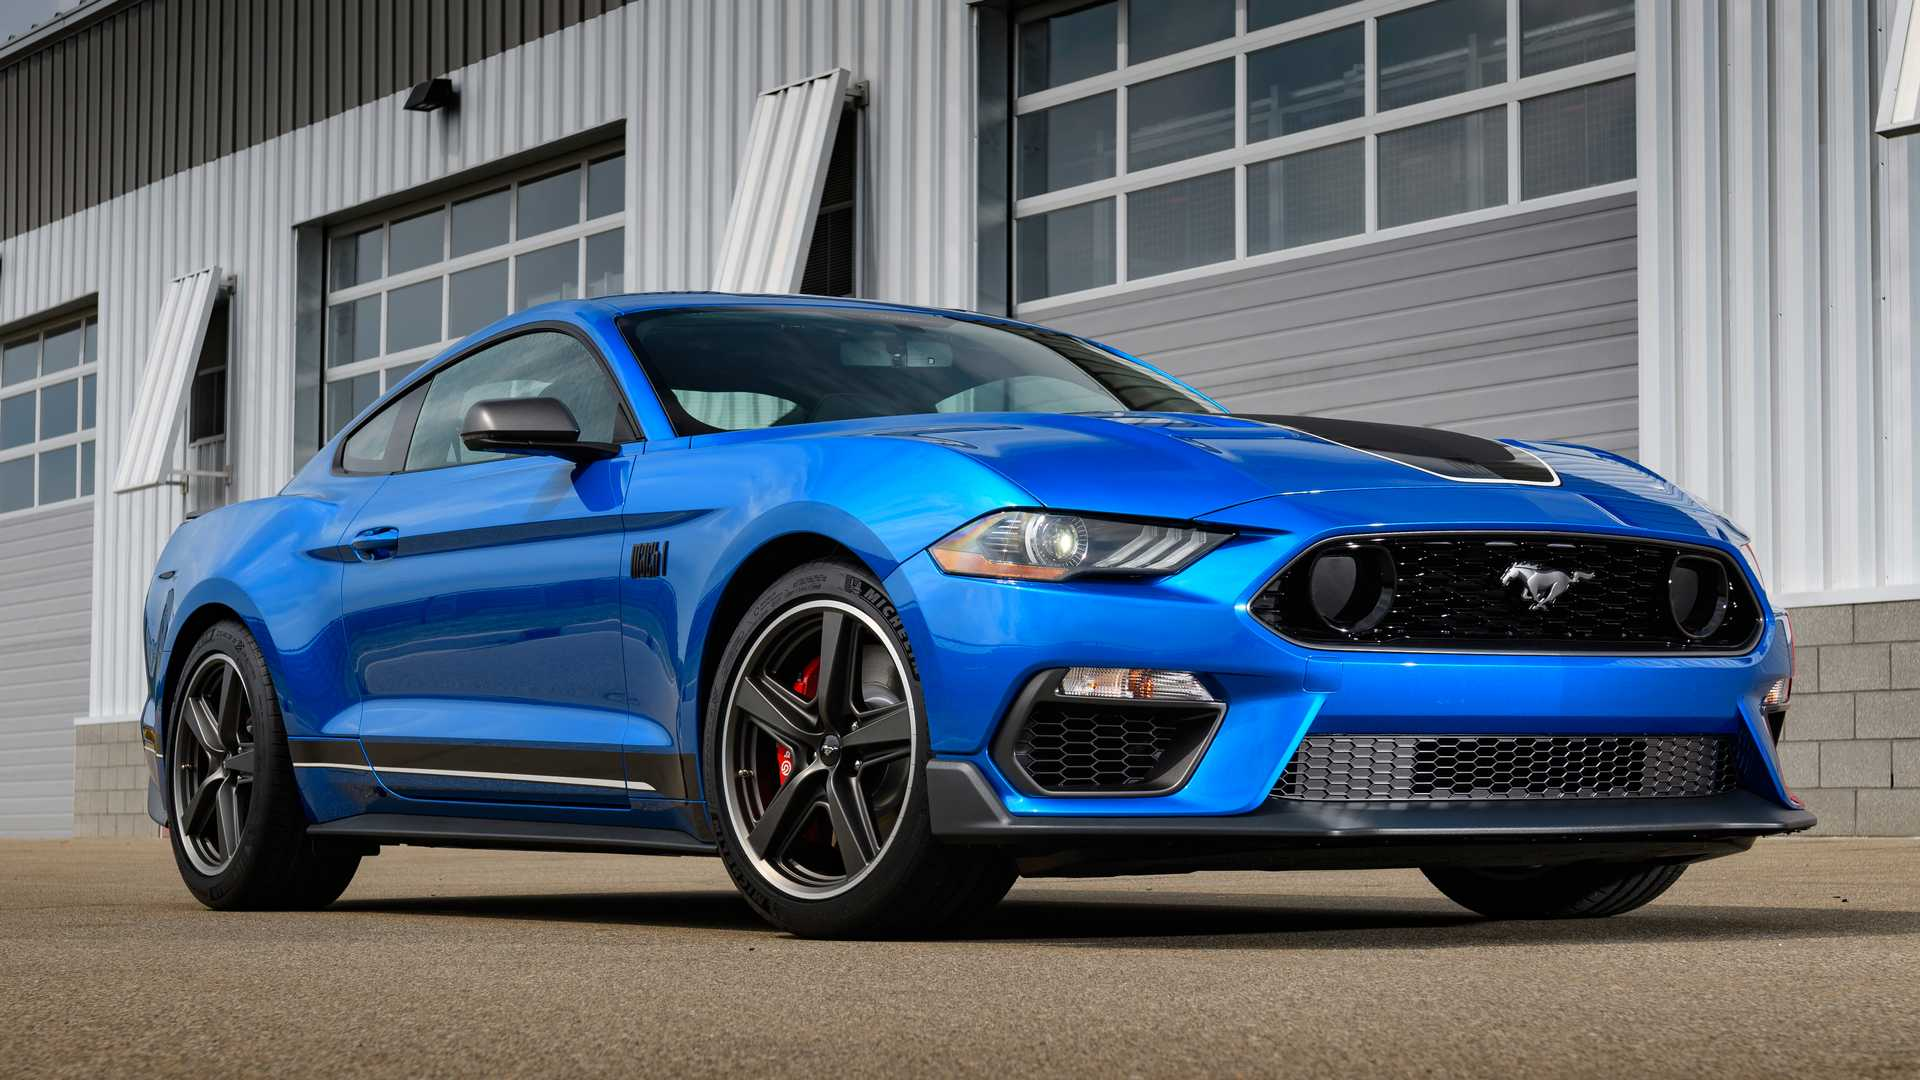 2021 Mustang Gt500 Review and Release date